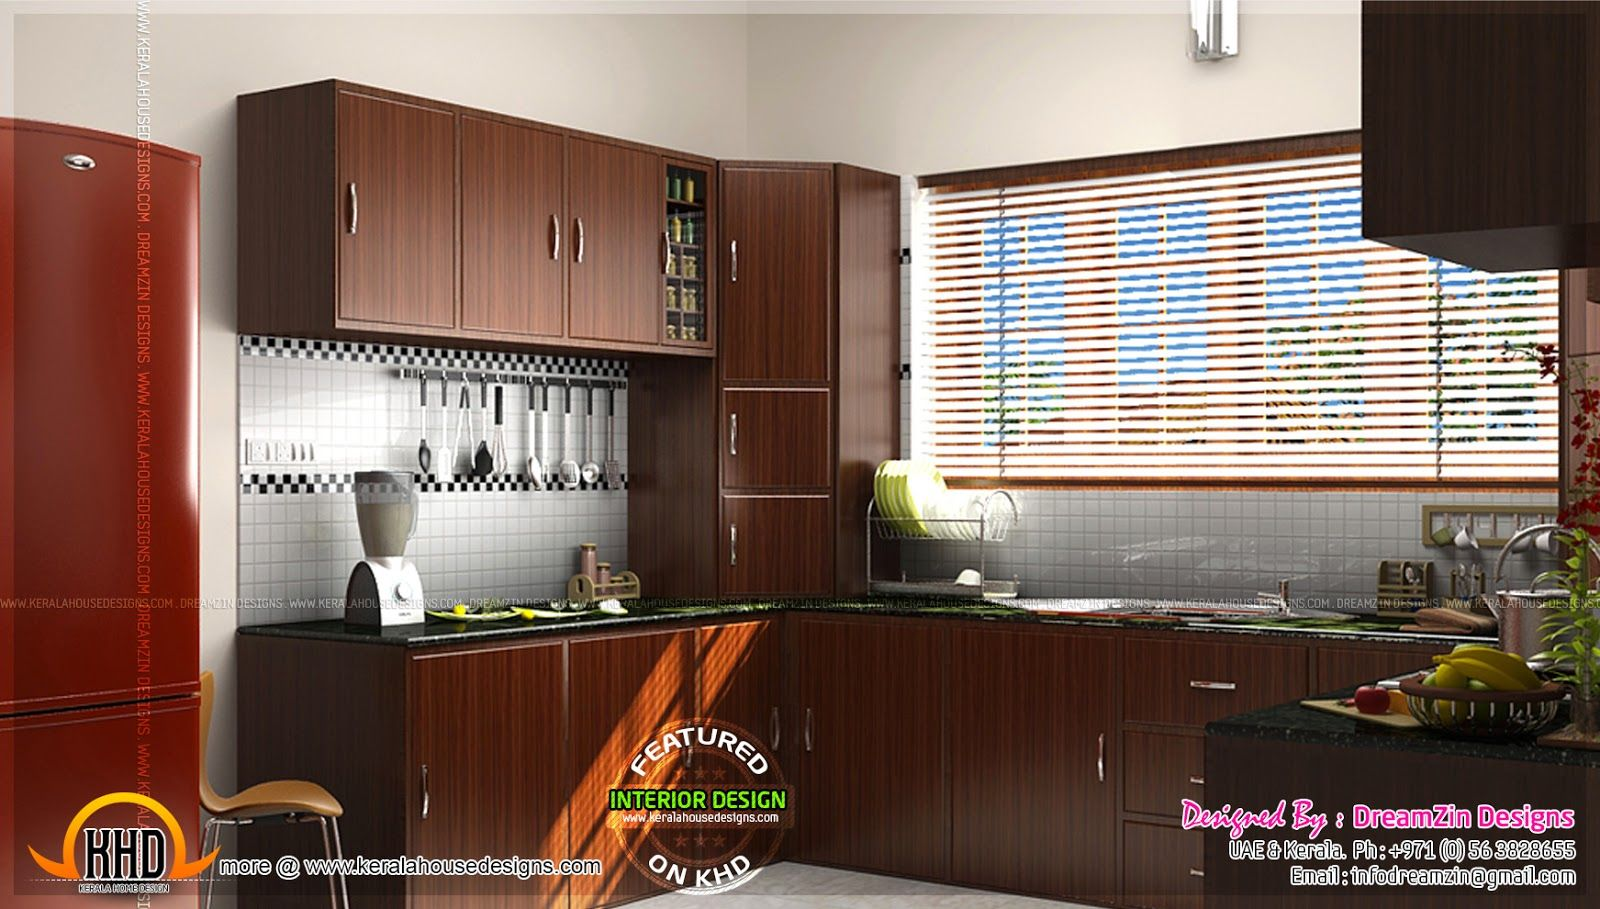 Delicieux Kerala Kitchen Interior Design Modular Kitchen Kerala Kerala Kitchen  Kitchen Interior Designs Contact House Design